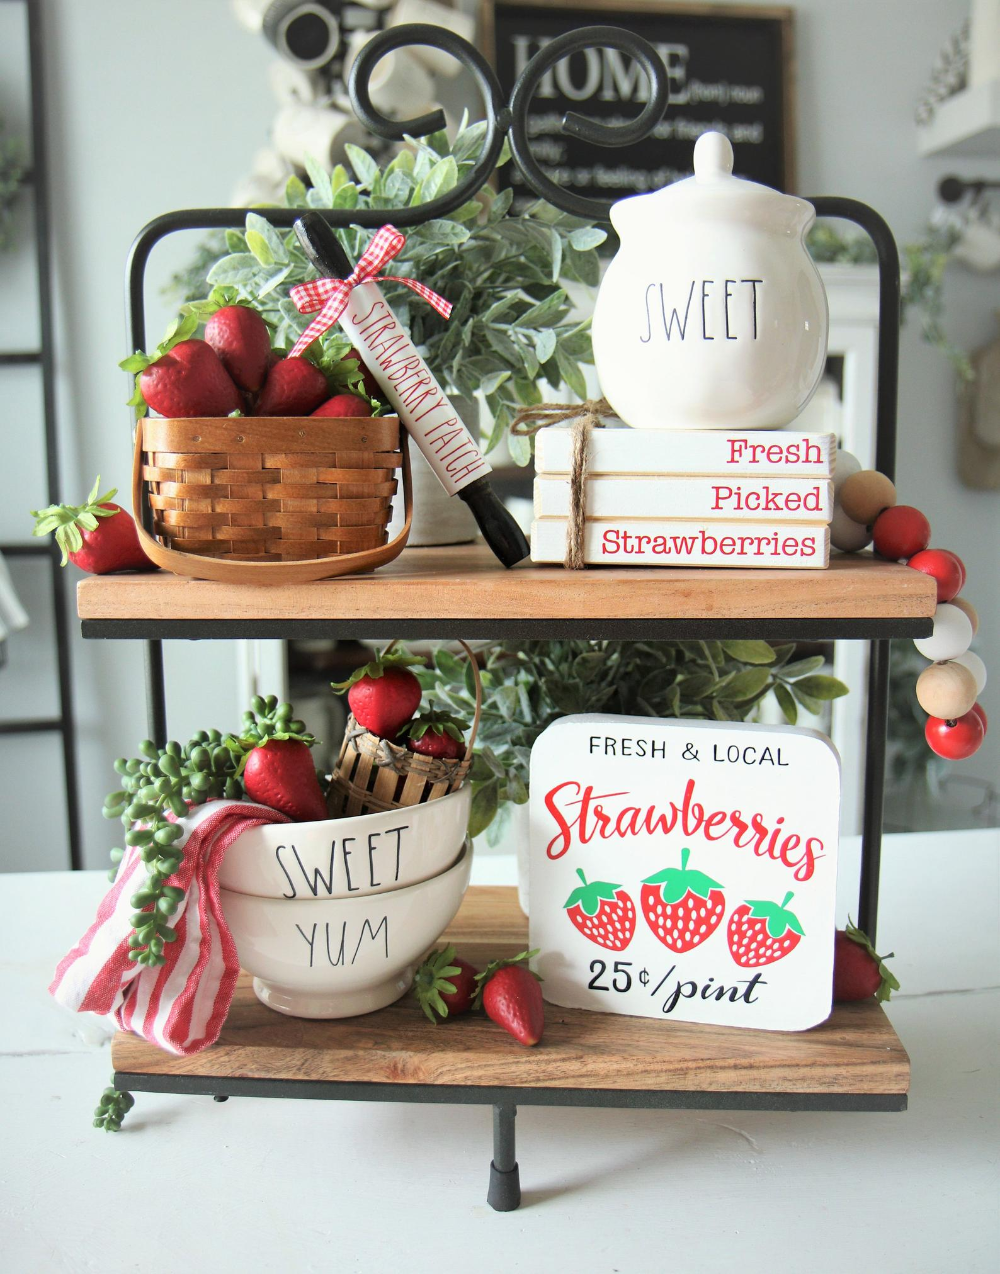 Sale Complete Set 5 Items Summer Decor Strawberry Strawberries Tier Tray Bundle Book Stacks Sign Basket Beaded Garland Rolling Pin In 2021 Kitchen Summertime Lemon